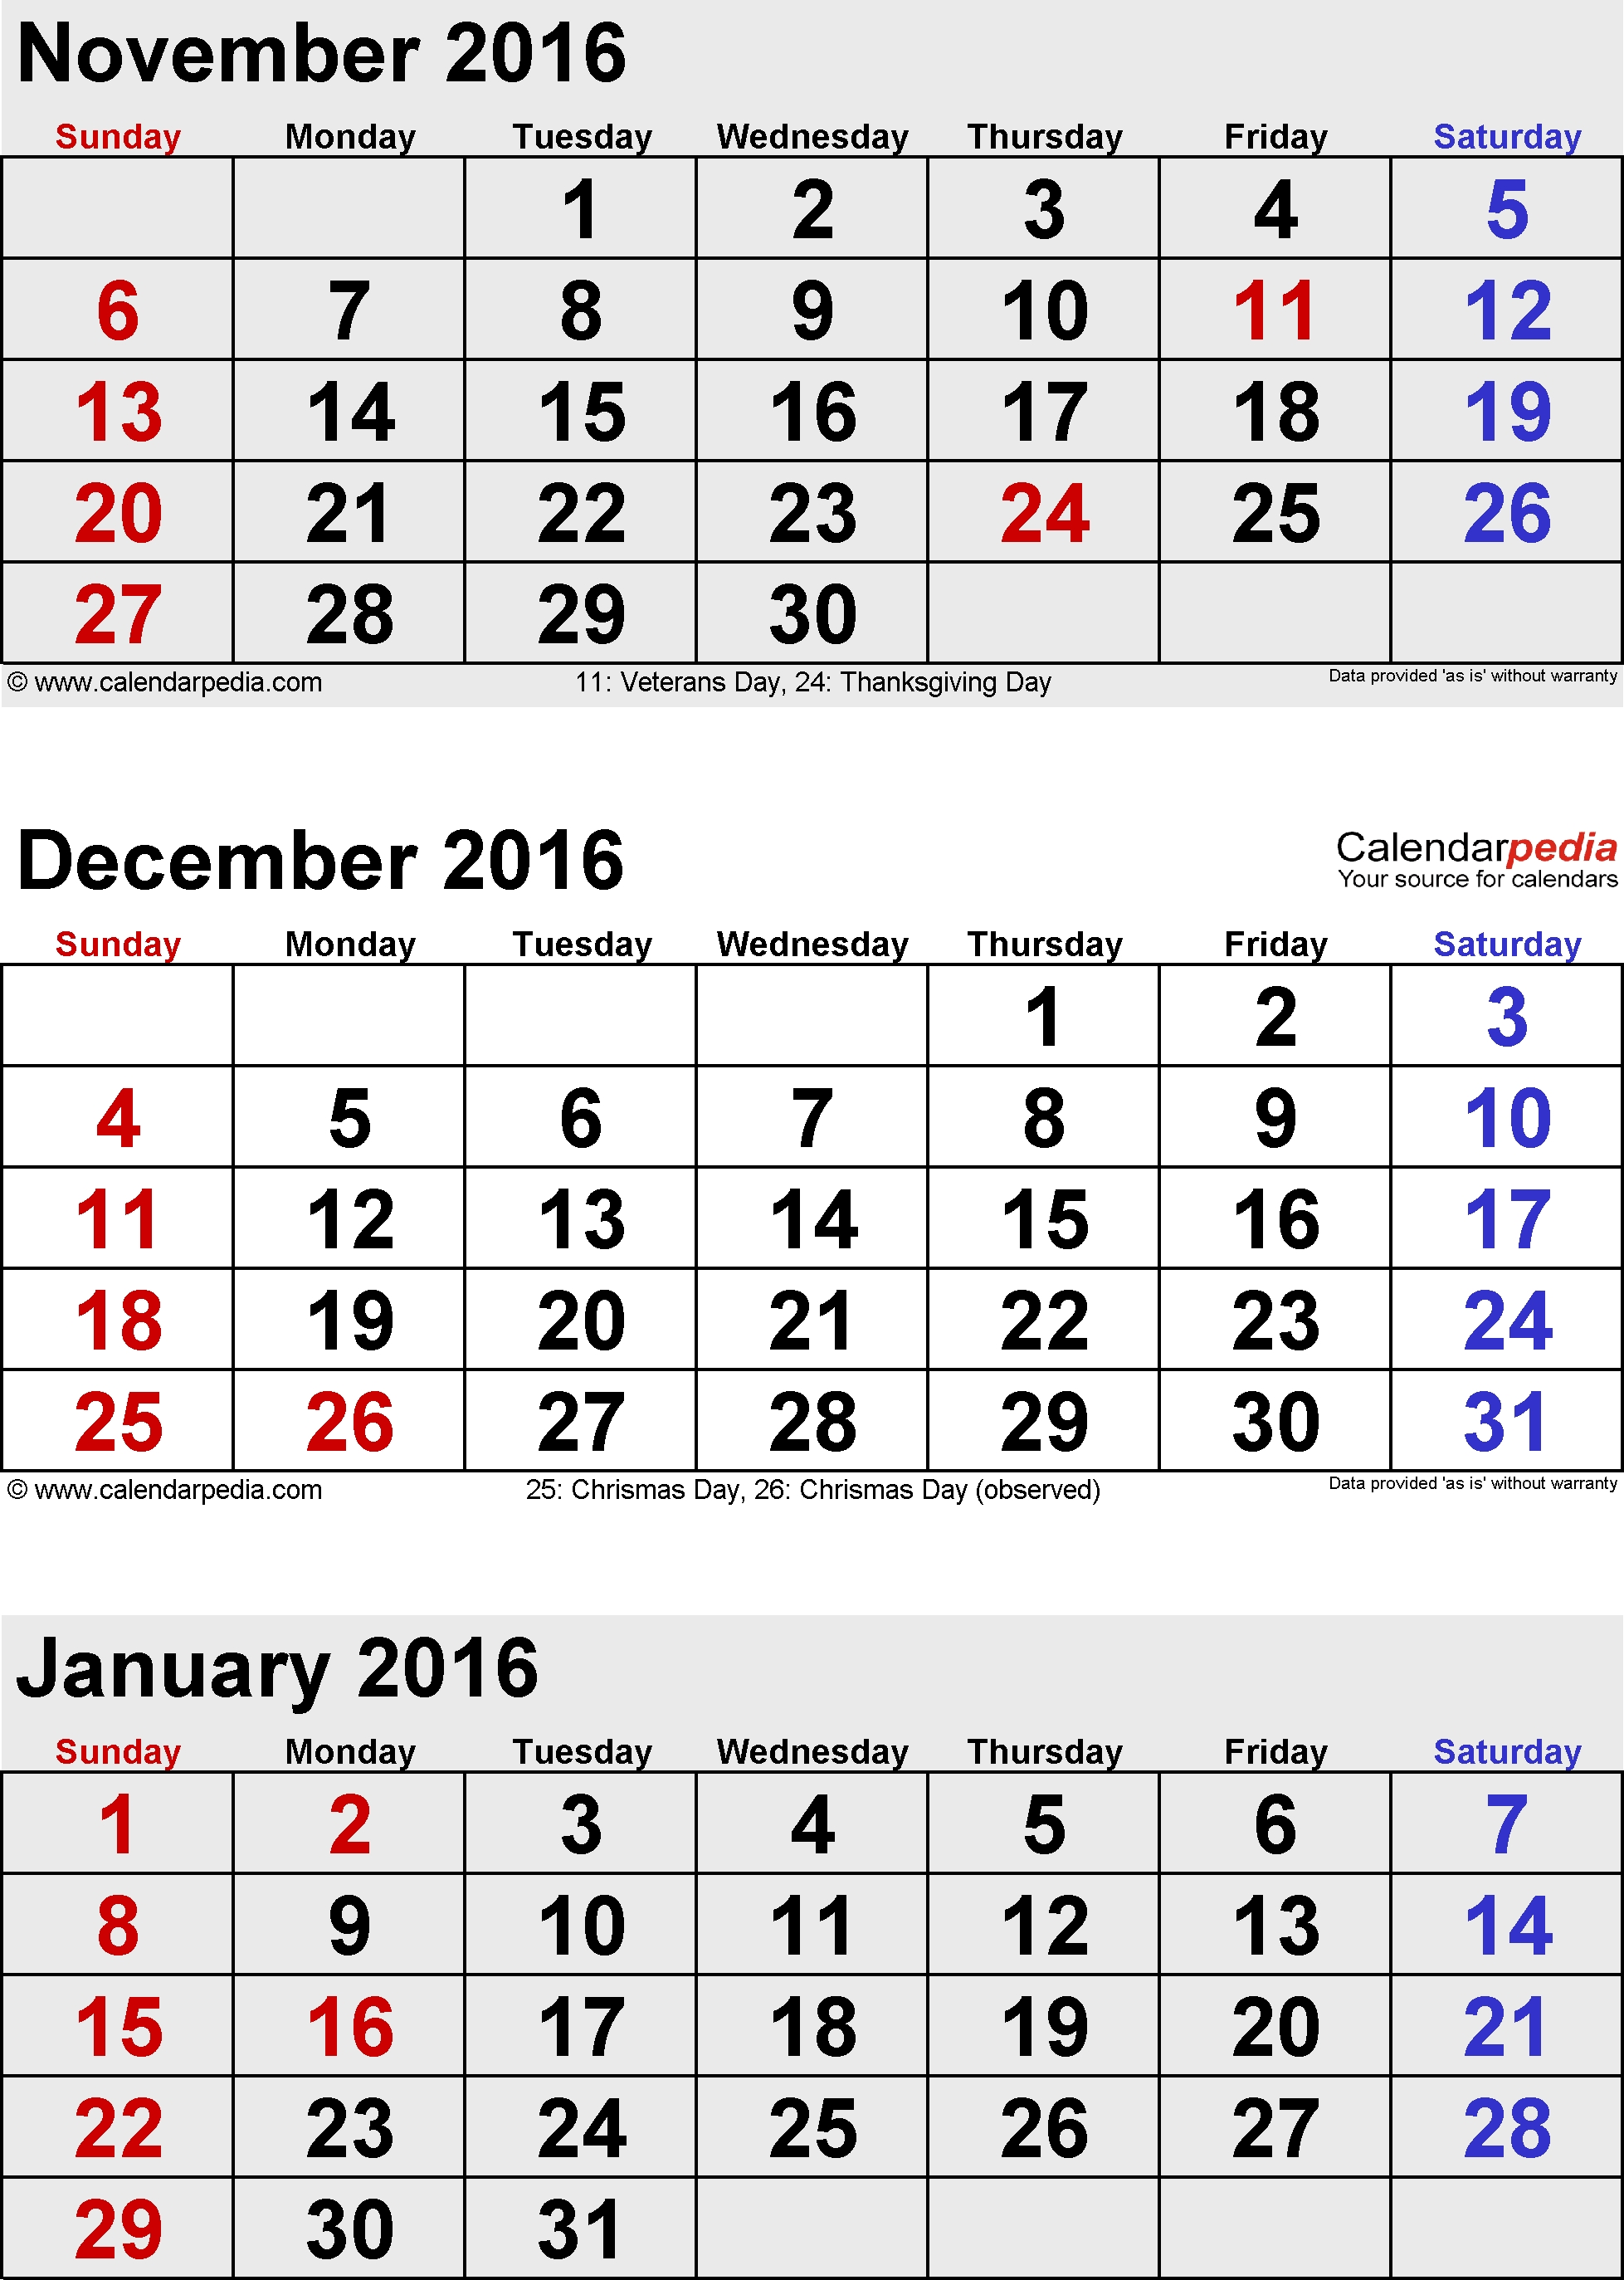 January Through January Calendar - Yeniscale.co  Images Of A Calendar January Through December